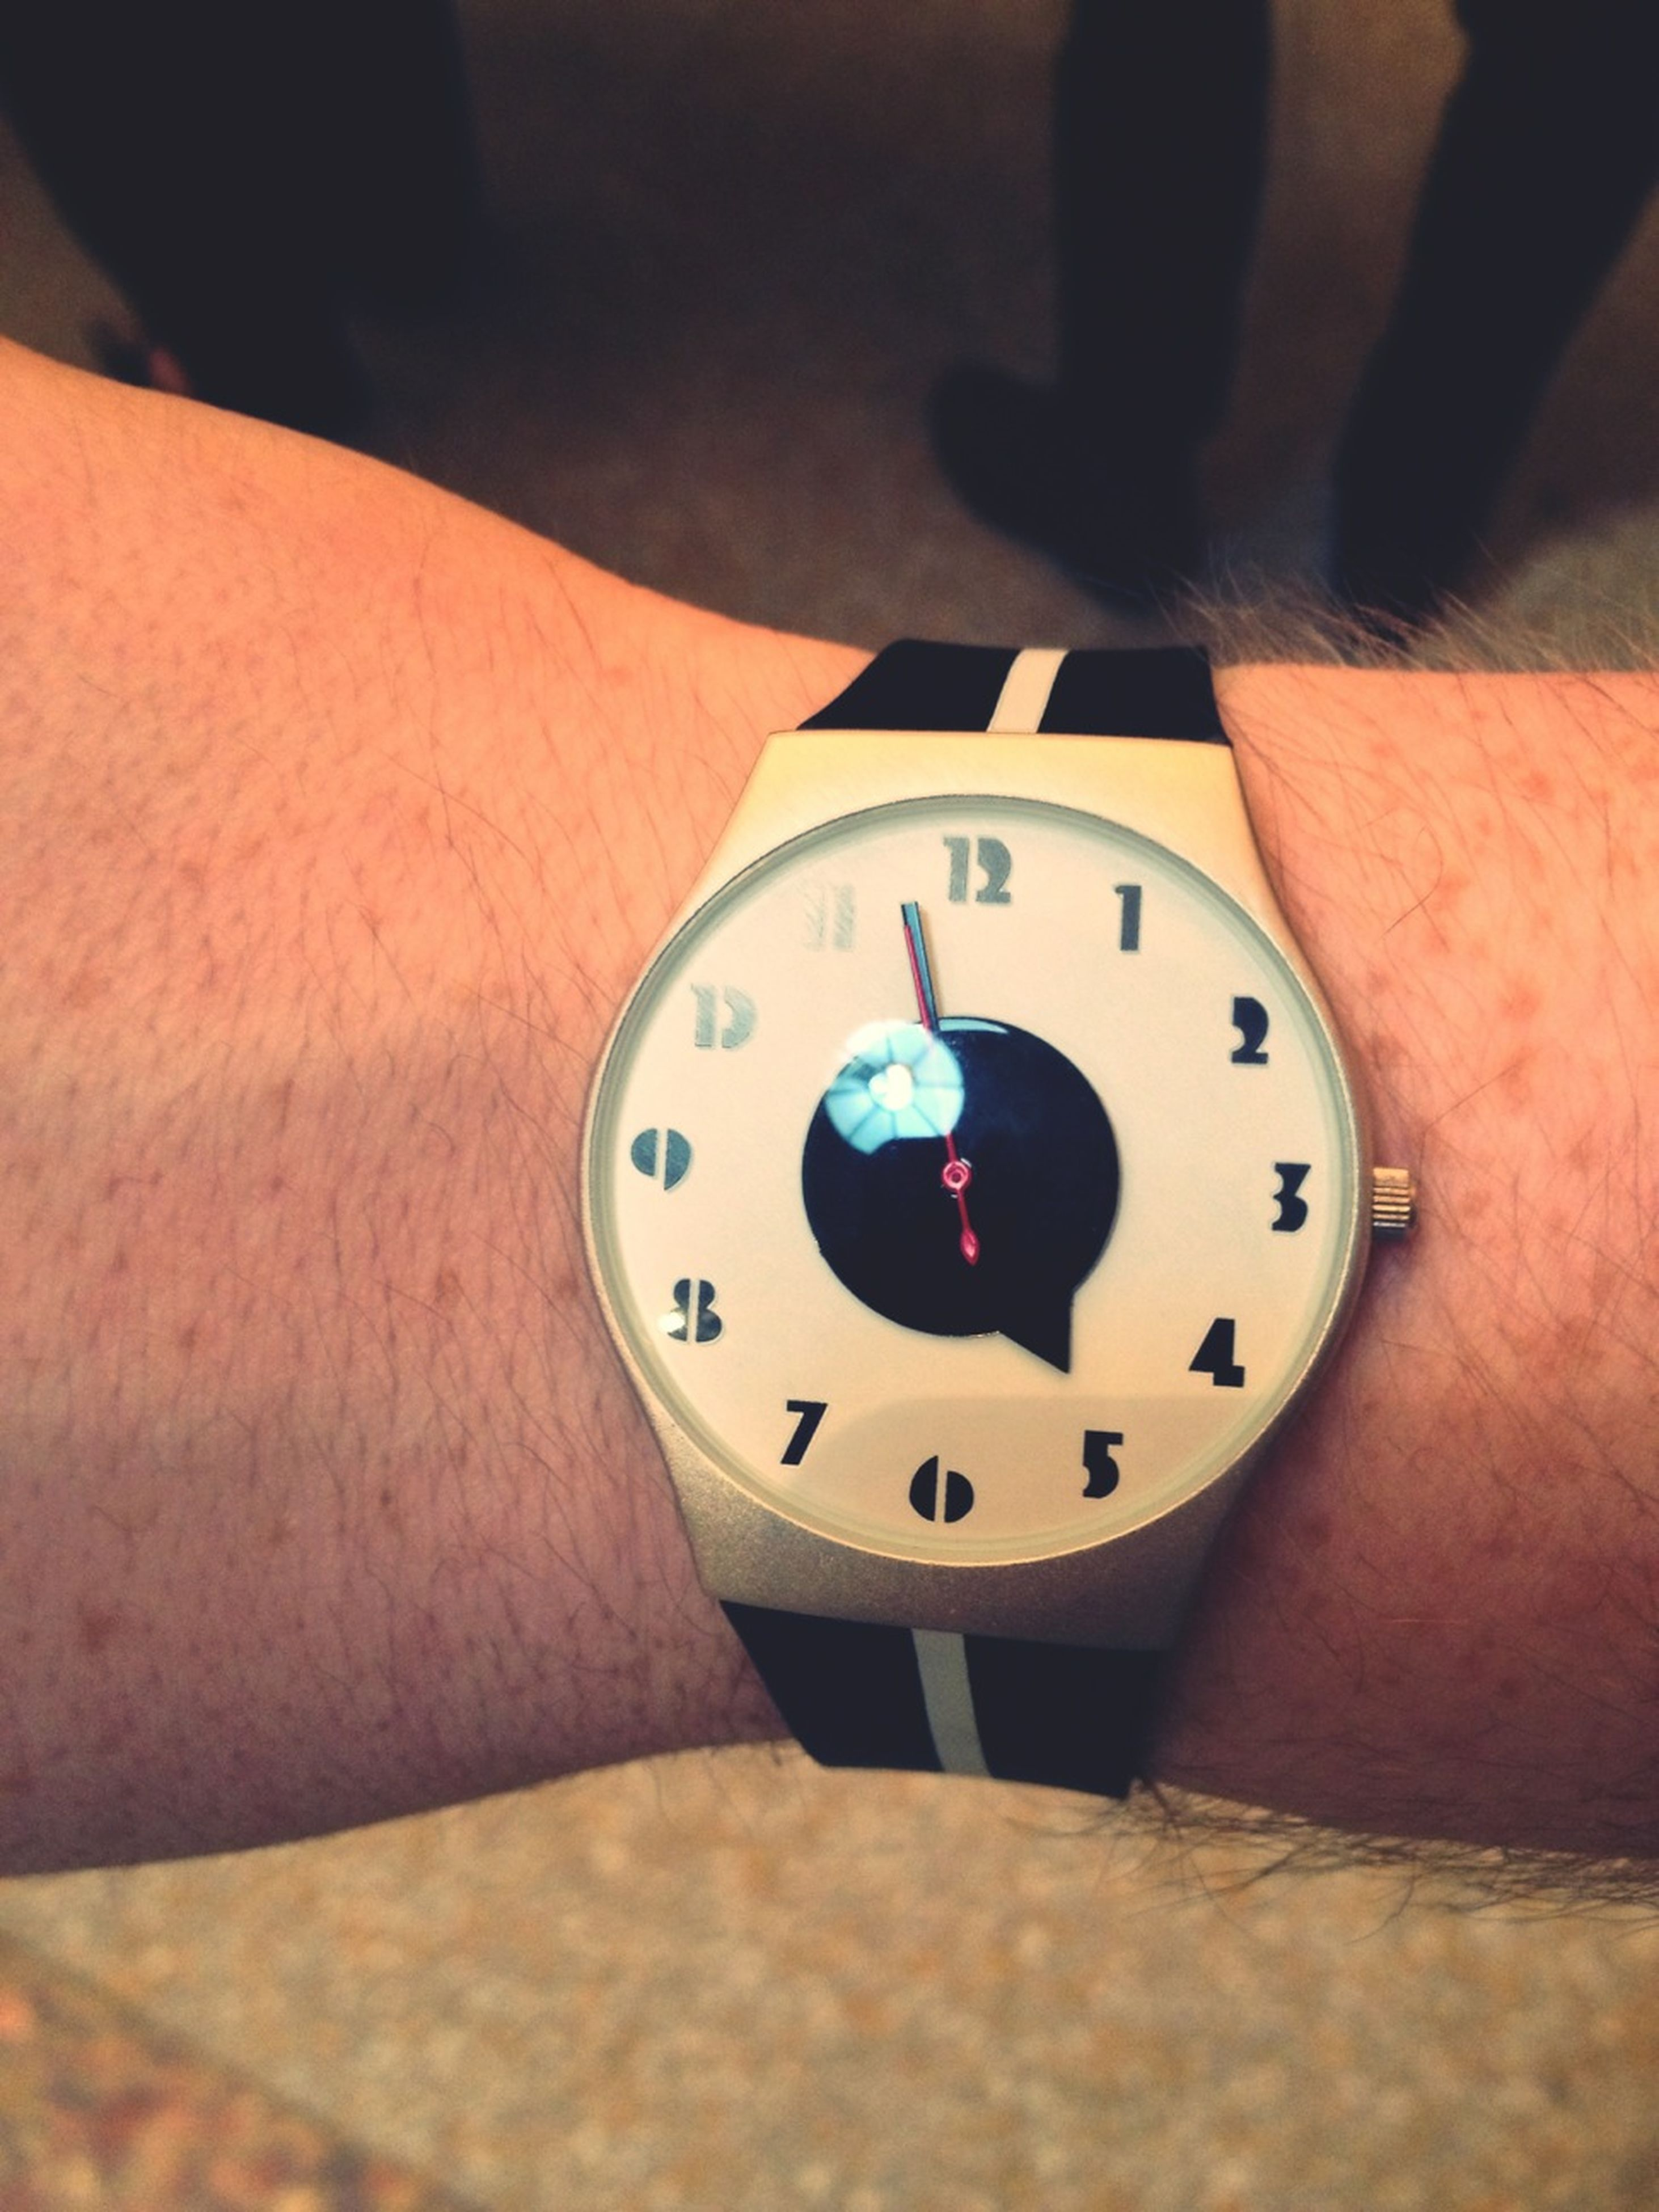 indoors, person, part of, close-up, time, holding, technology, cropped, accuracy, clock, human finger, old-fashioned, single object, number, wristwatch, photography themes, high angle view